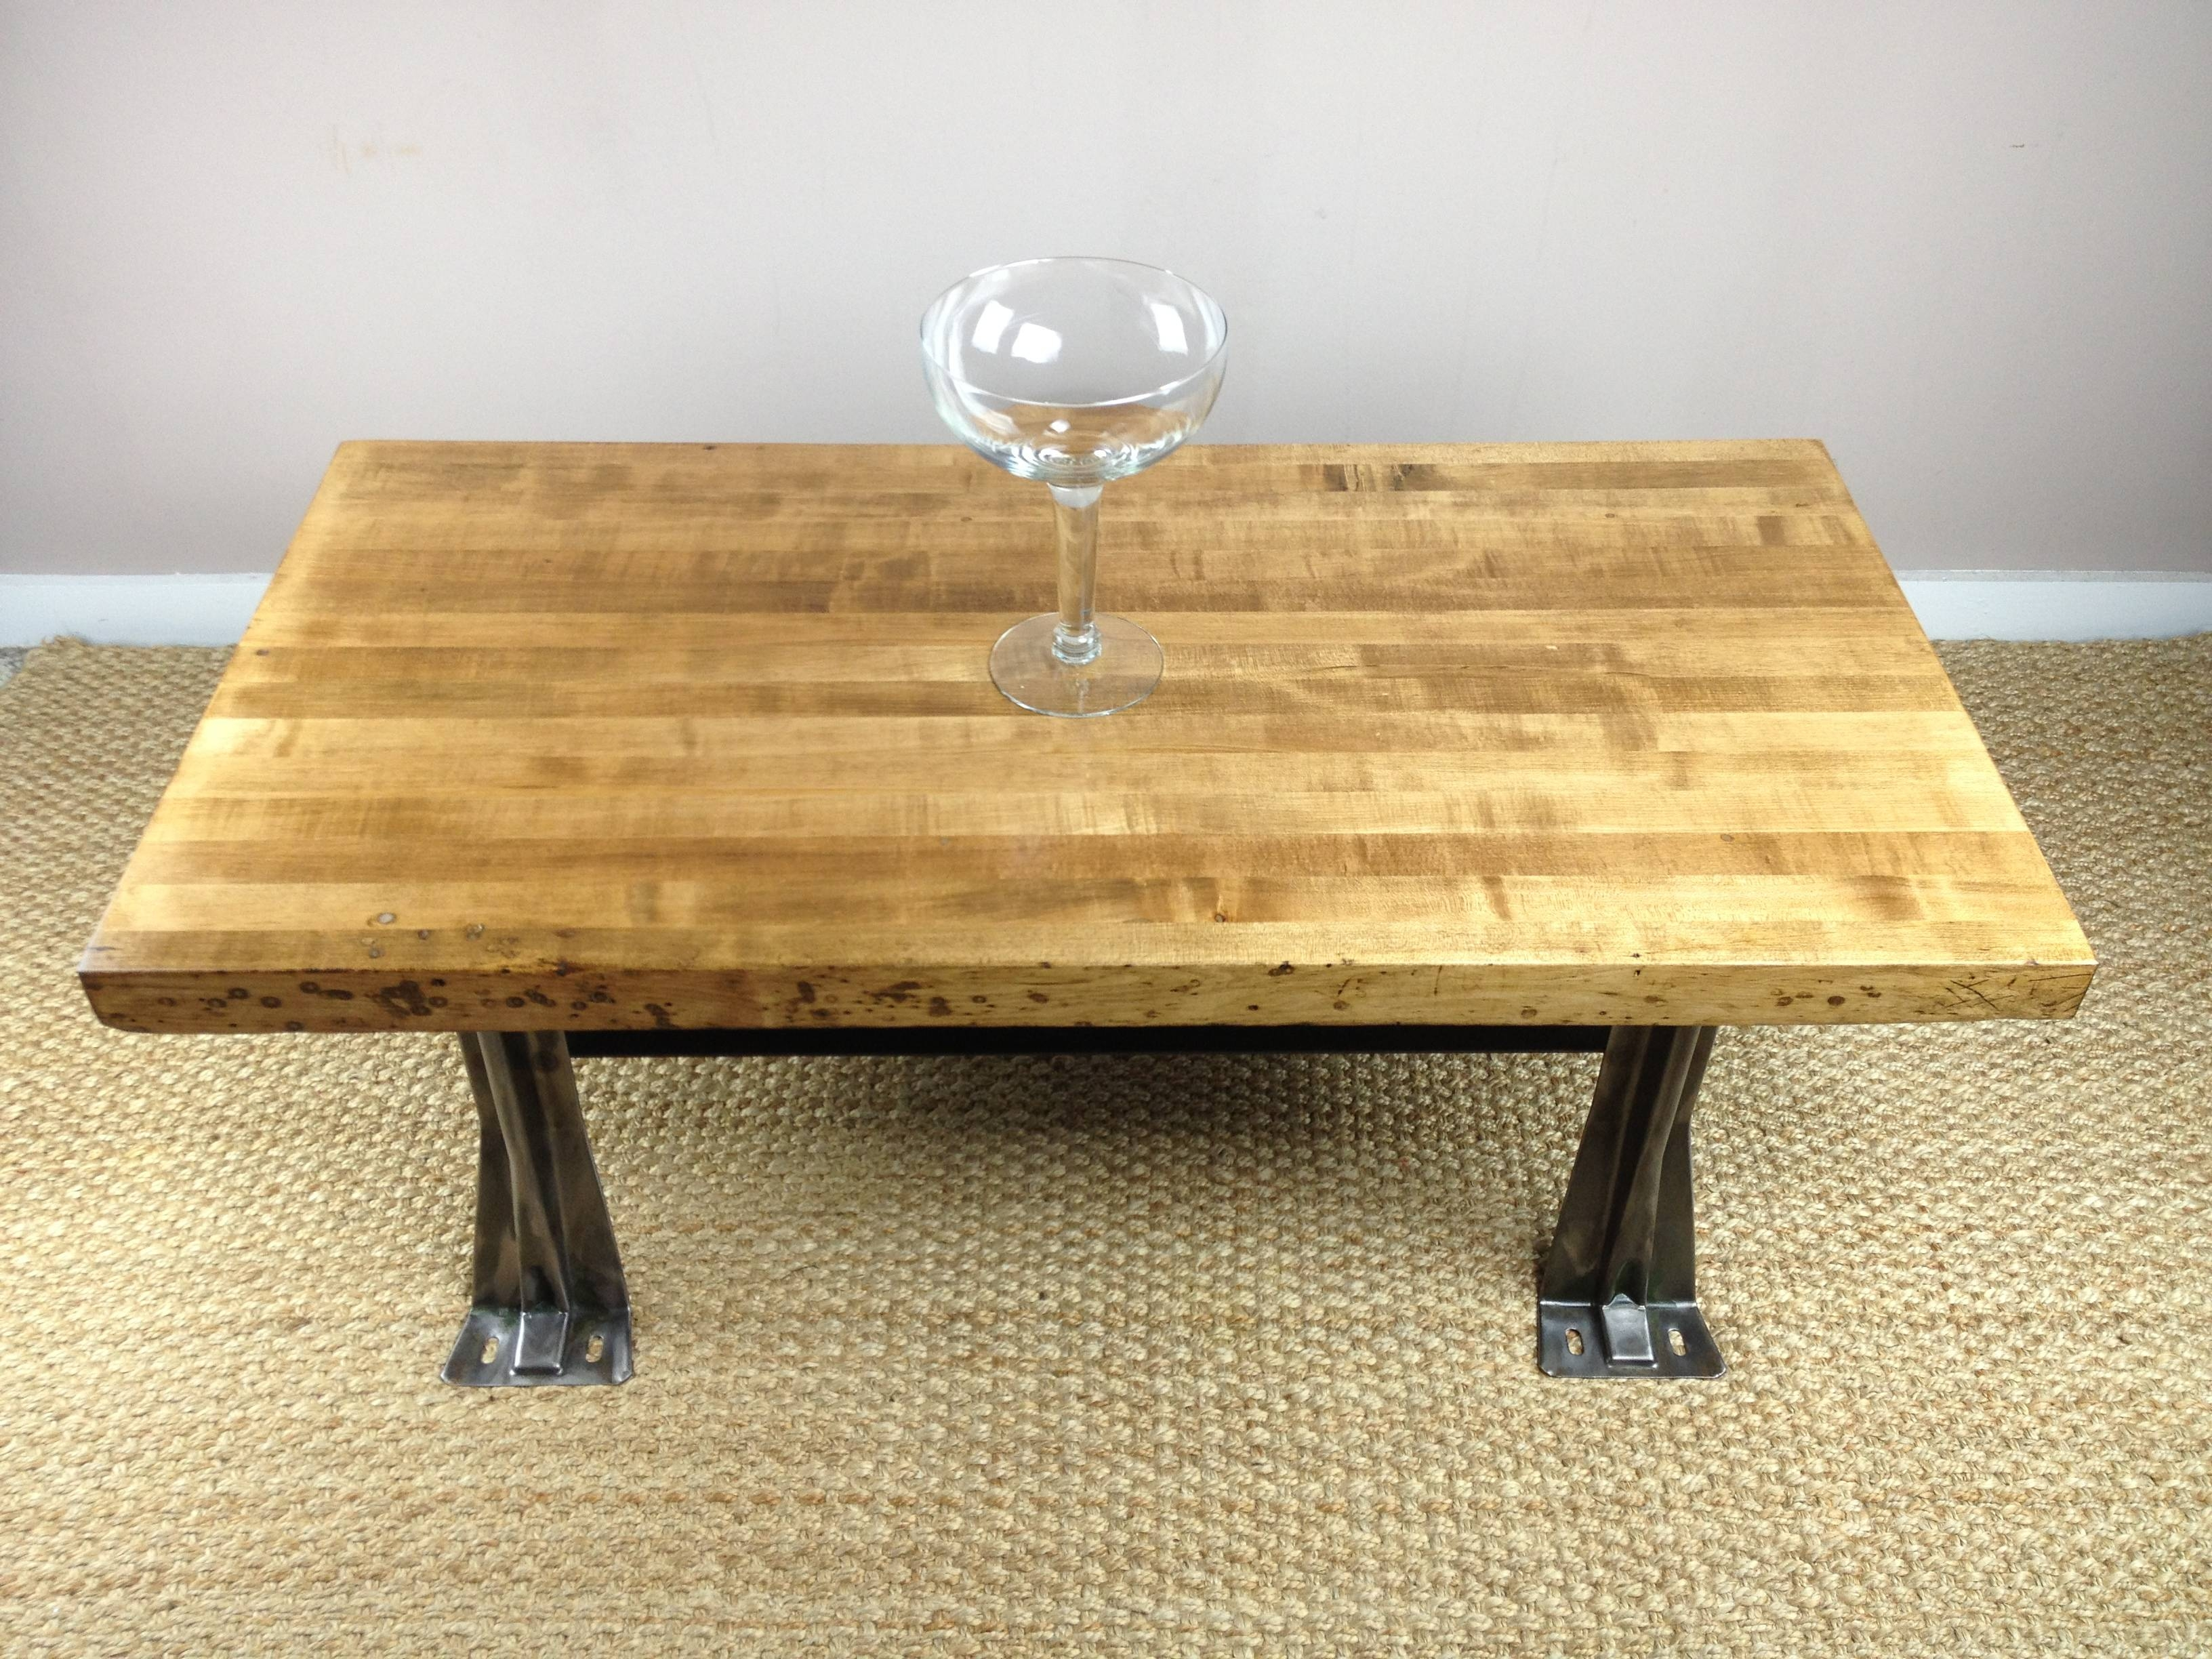 Diy Custom Square Low Coffee Table Using Reclaimed Wood Top And in Low Square Wooden Coffee Tables (Image 14 of 30)